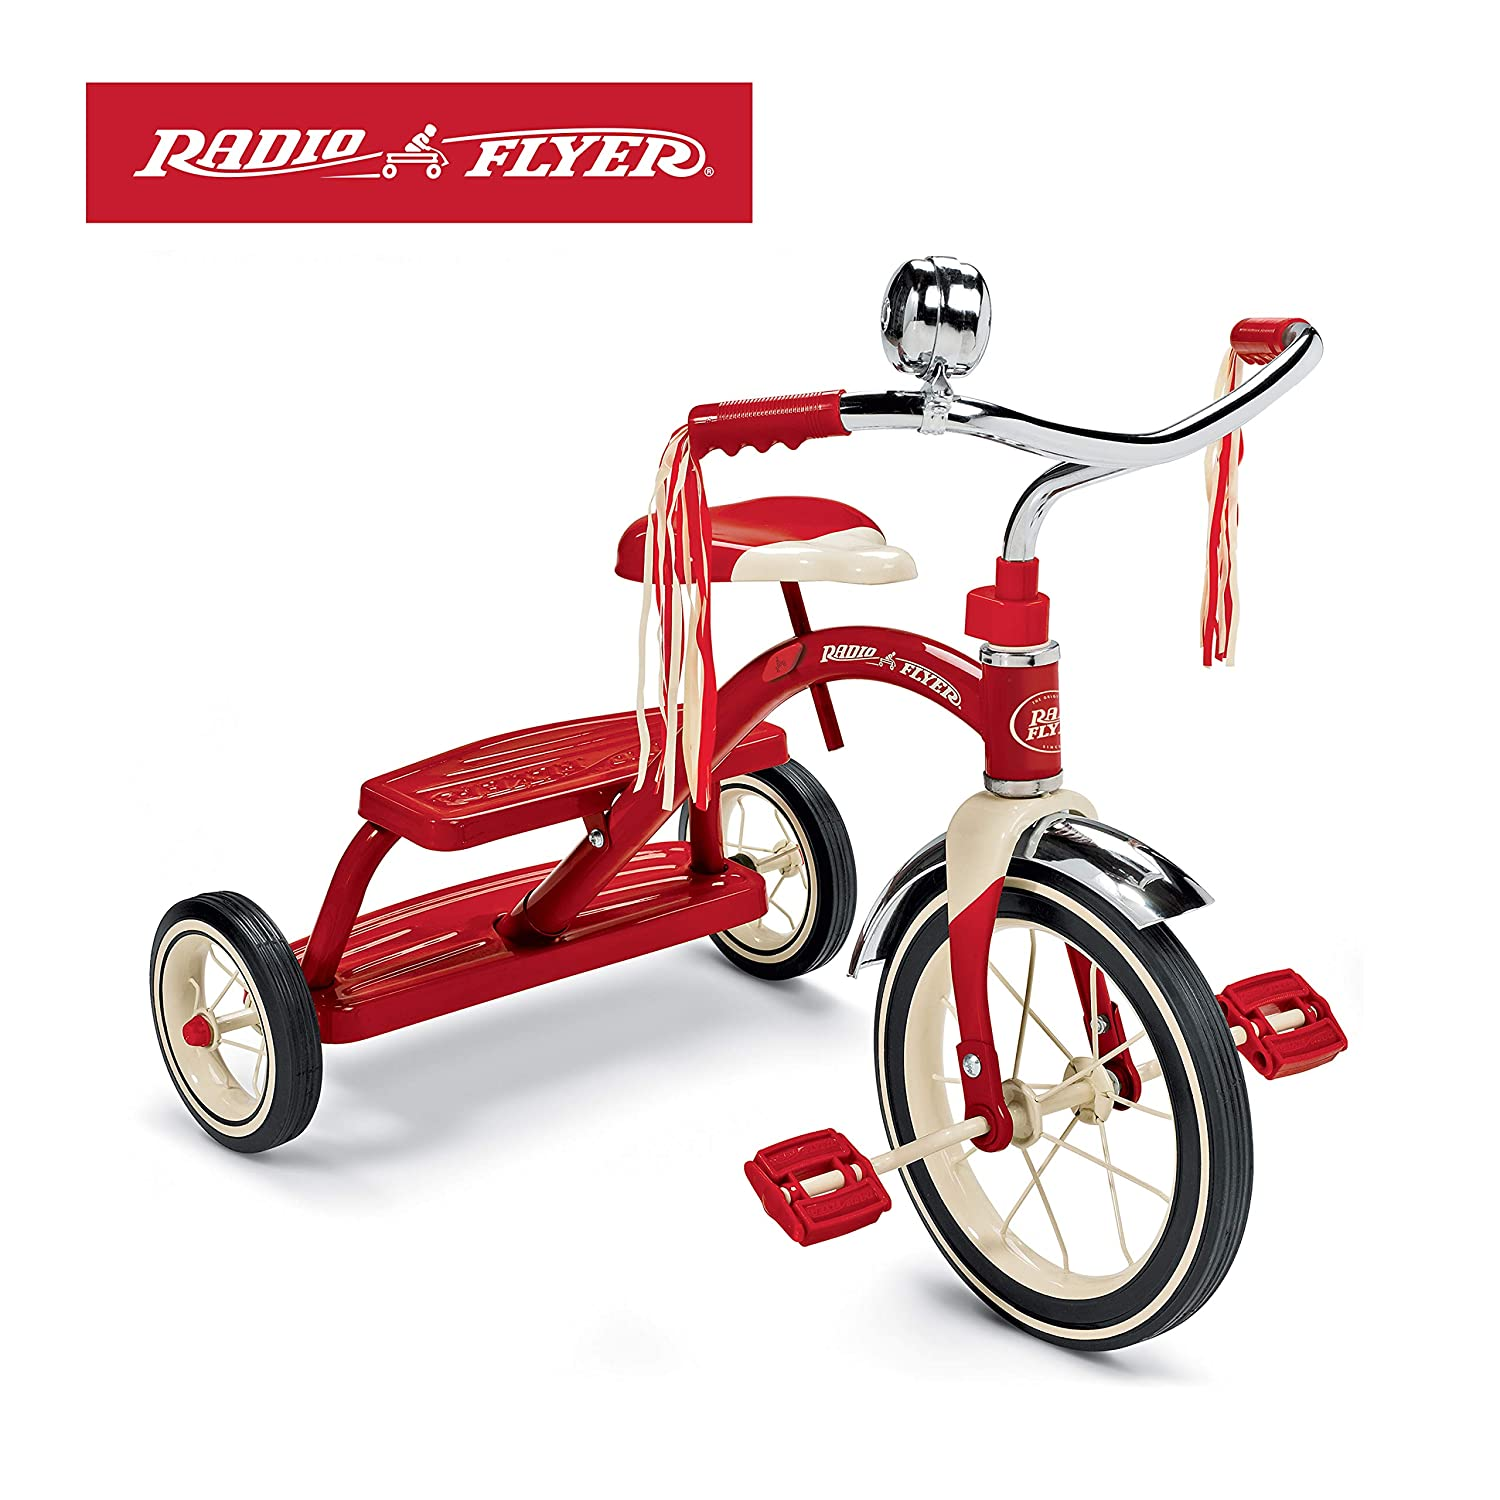 e4a8d08e7fa86 Radio Flyer Classic Red Dual Deck Tricycle